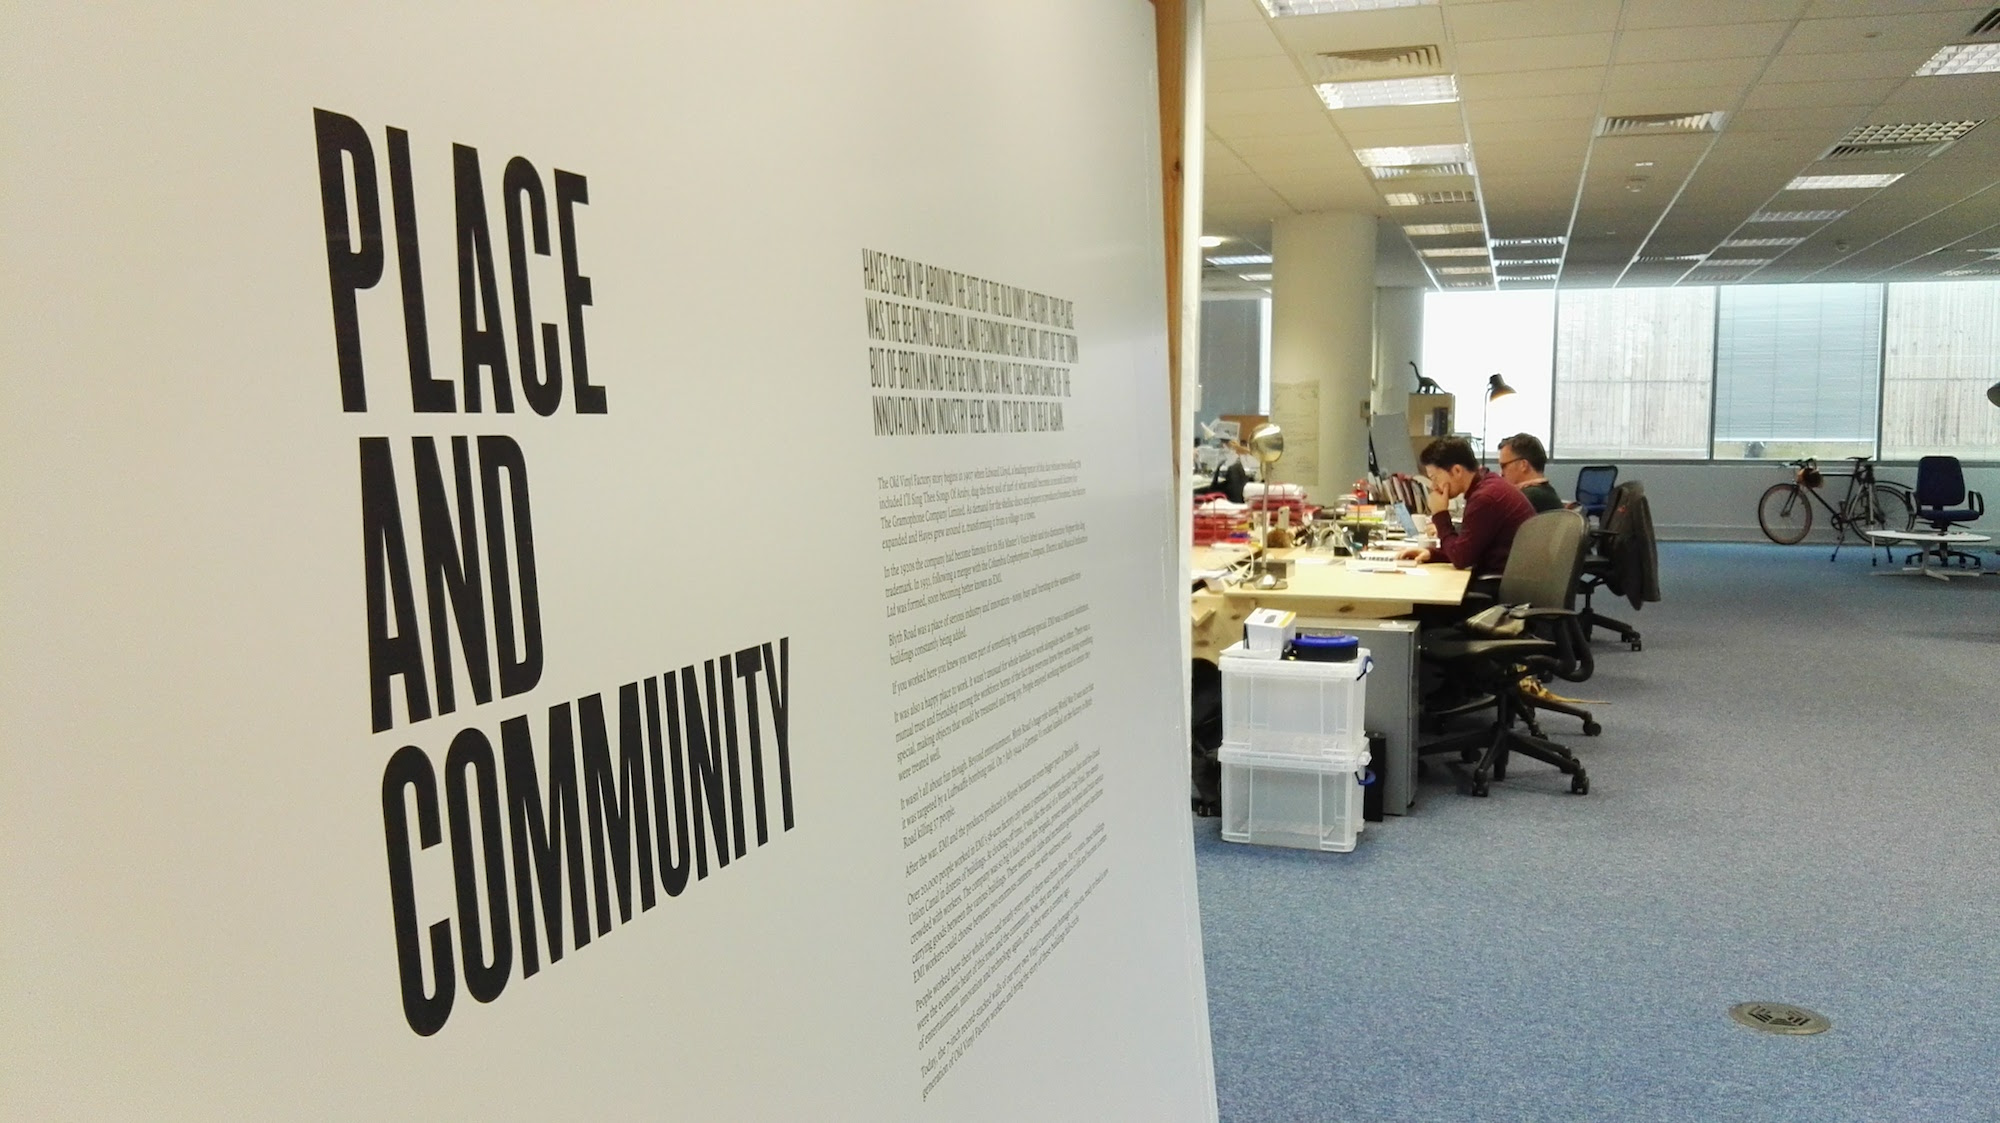 Place and community poster at the Central Research Laboratory